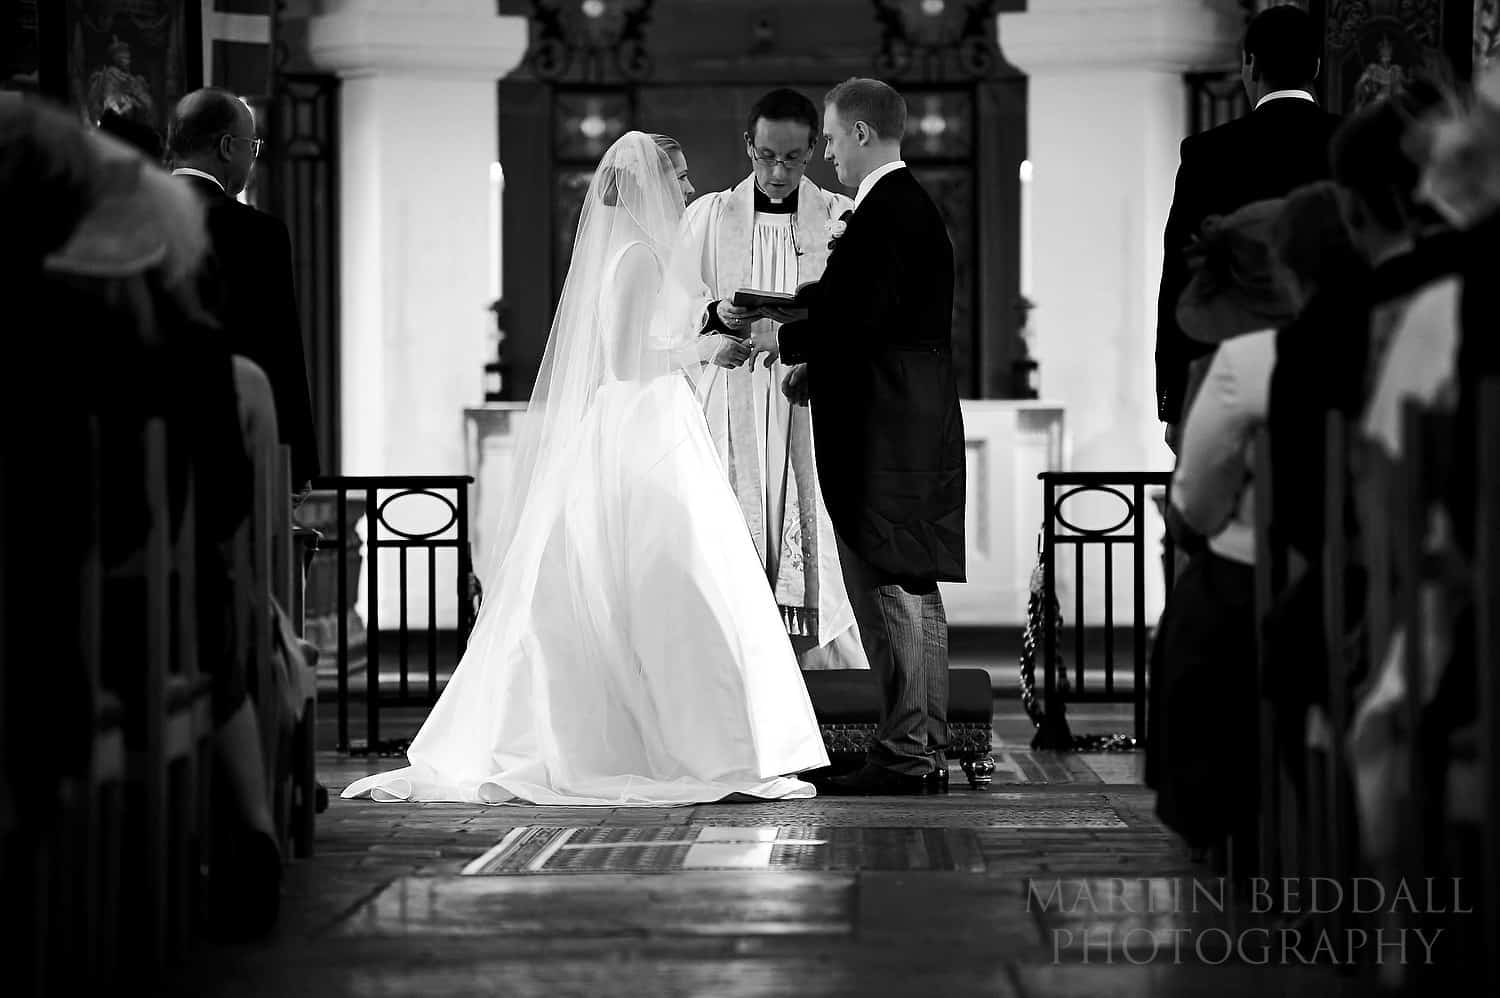 Wedding ceremony in the OBE chapel at St Paul's cathedral